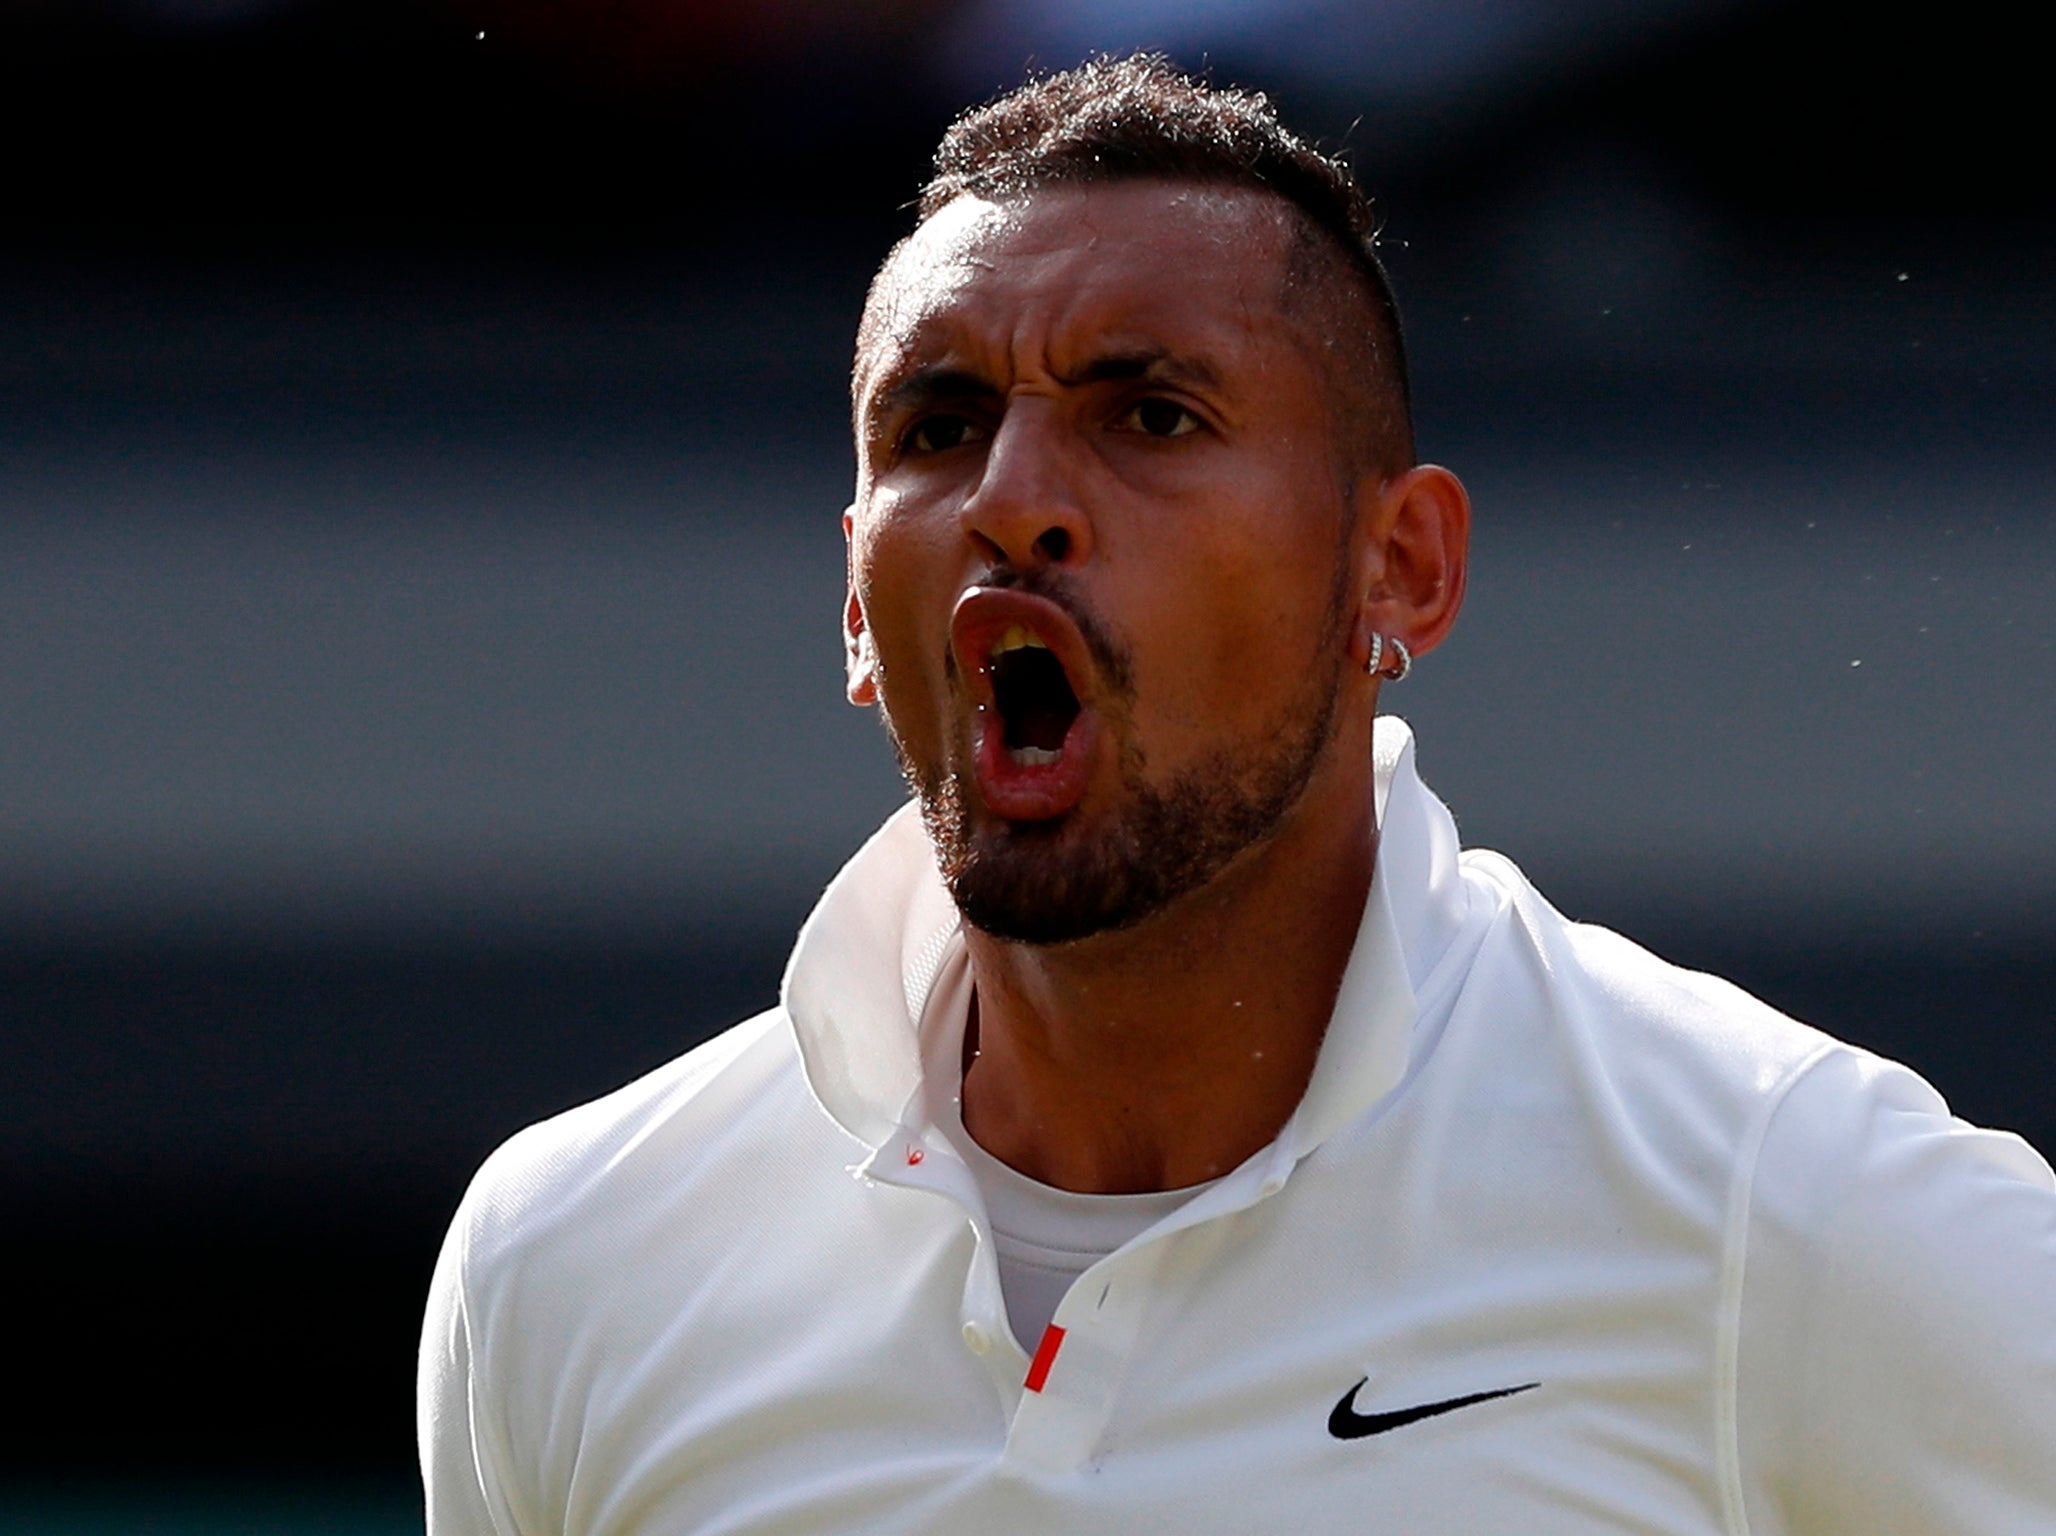 Nick Kyrgios hits back at 'boring' Casper Ruud after being labelled an 'idiot' by Norwegian